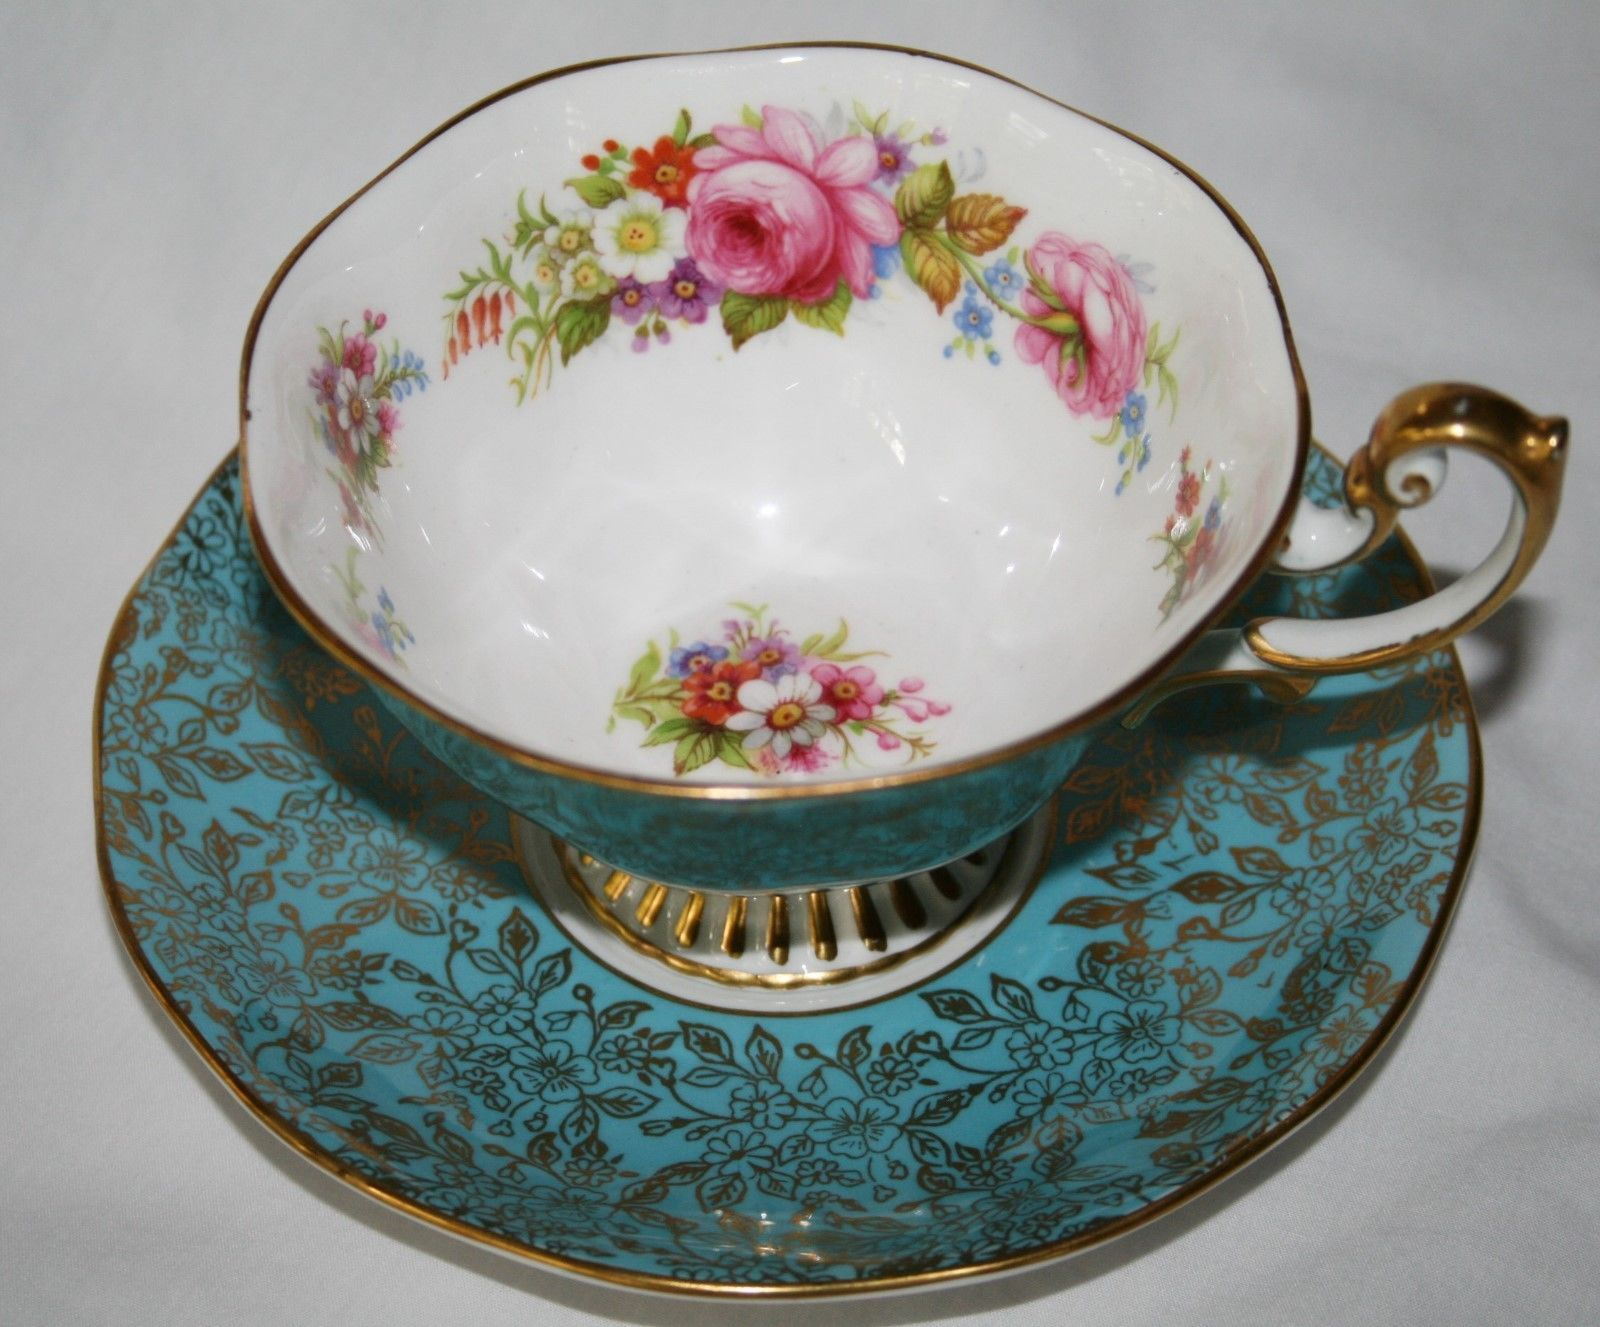 Royal Albert Turquoise Gold Chintz Tea Cup & Saucer Set Multi-Colored Flowers